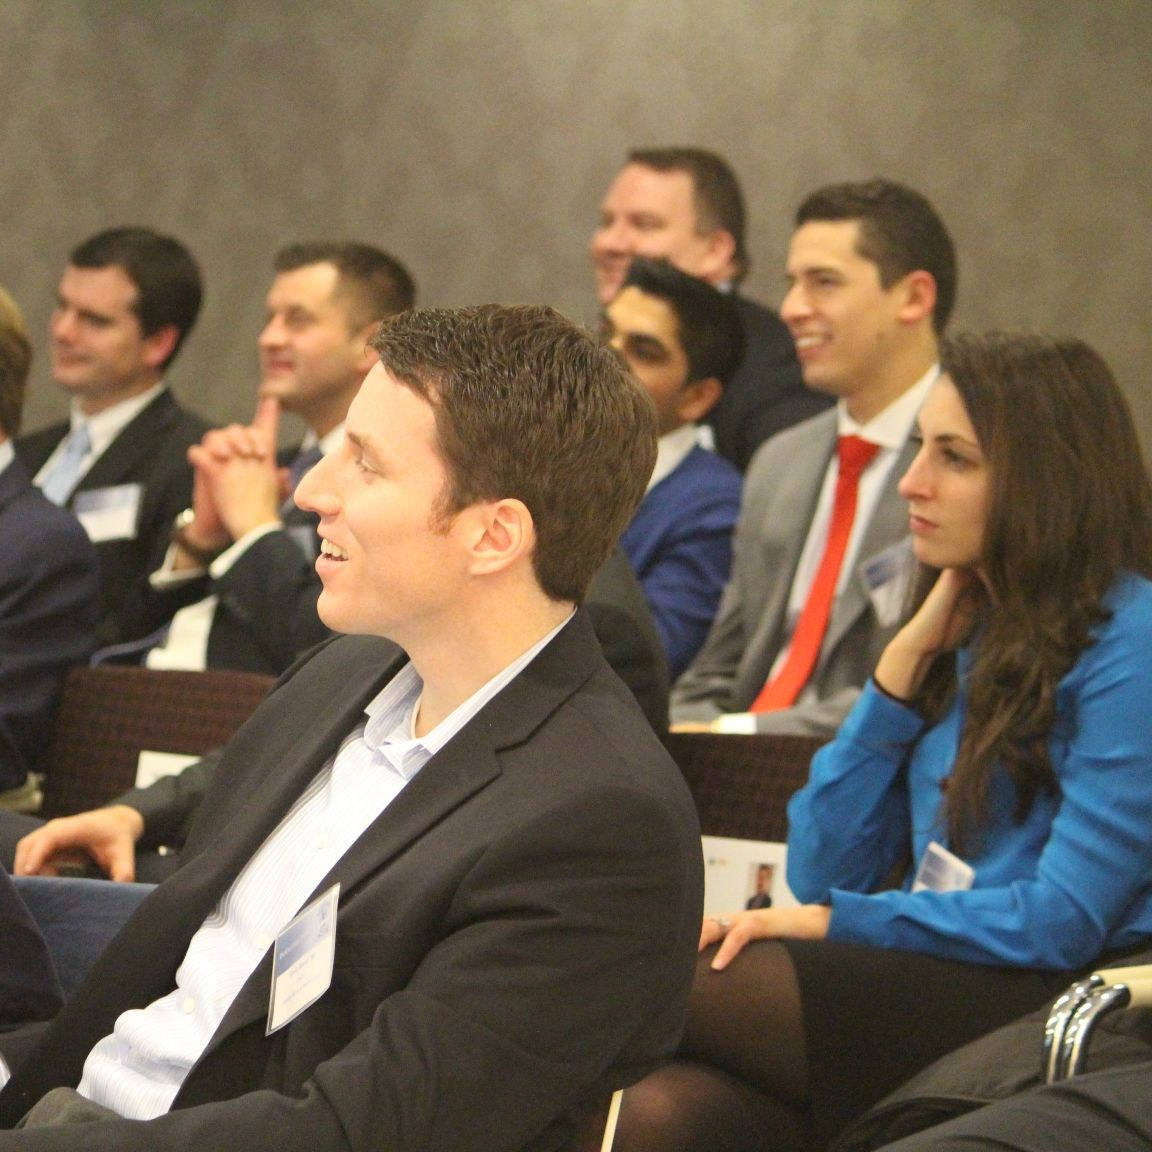 Finance Networking Events